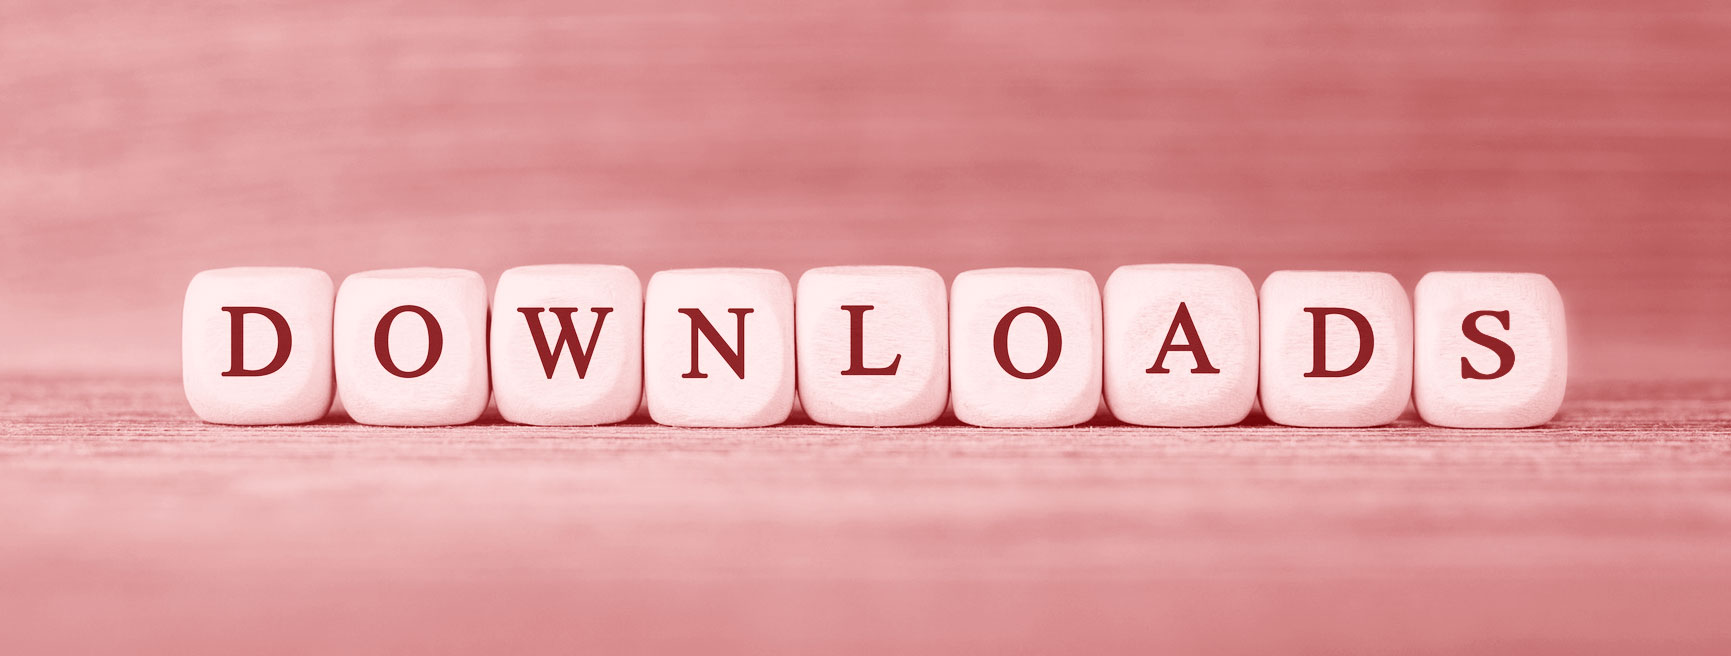 Fotolia_210718094_Subscription_Monthly_s